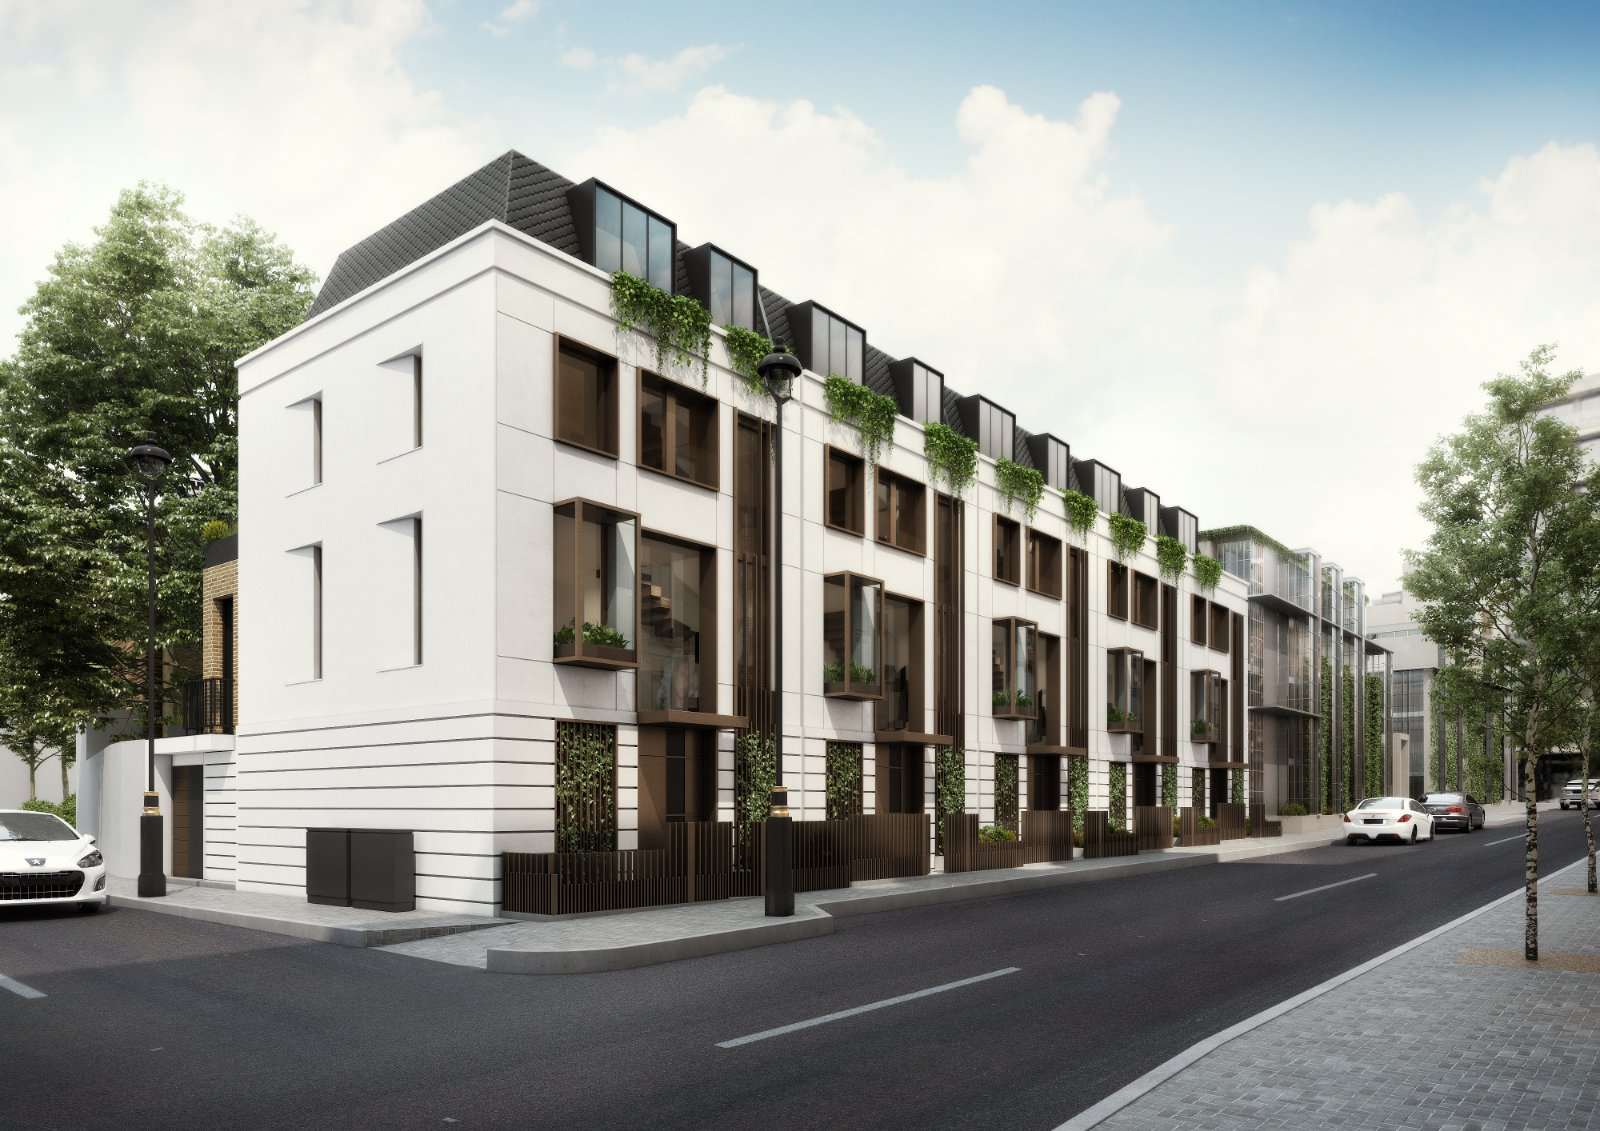 Lancelot Place, Knightsbridge, London, SW7 Property, London